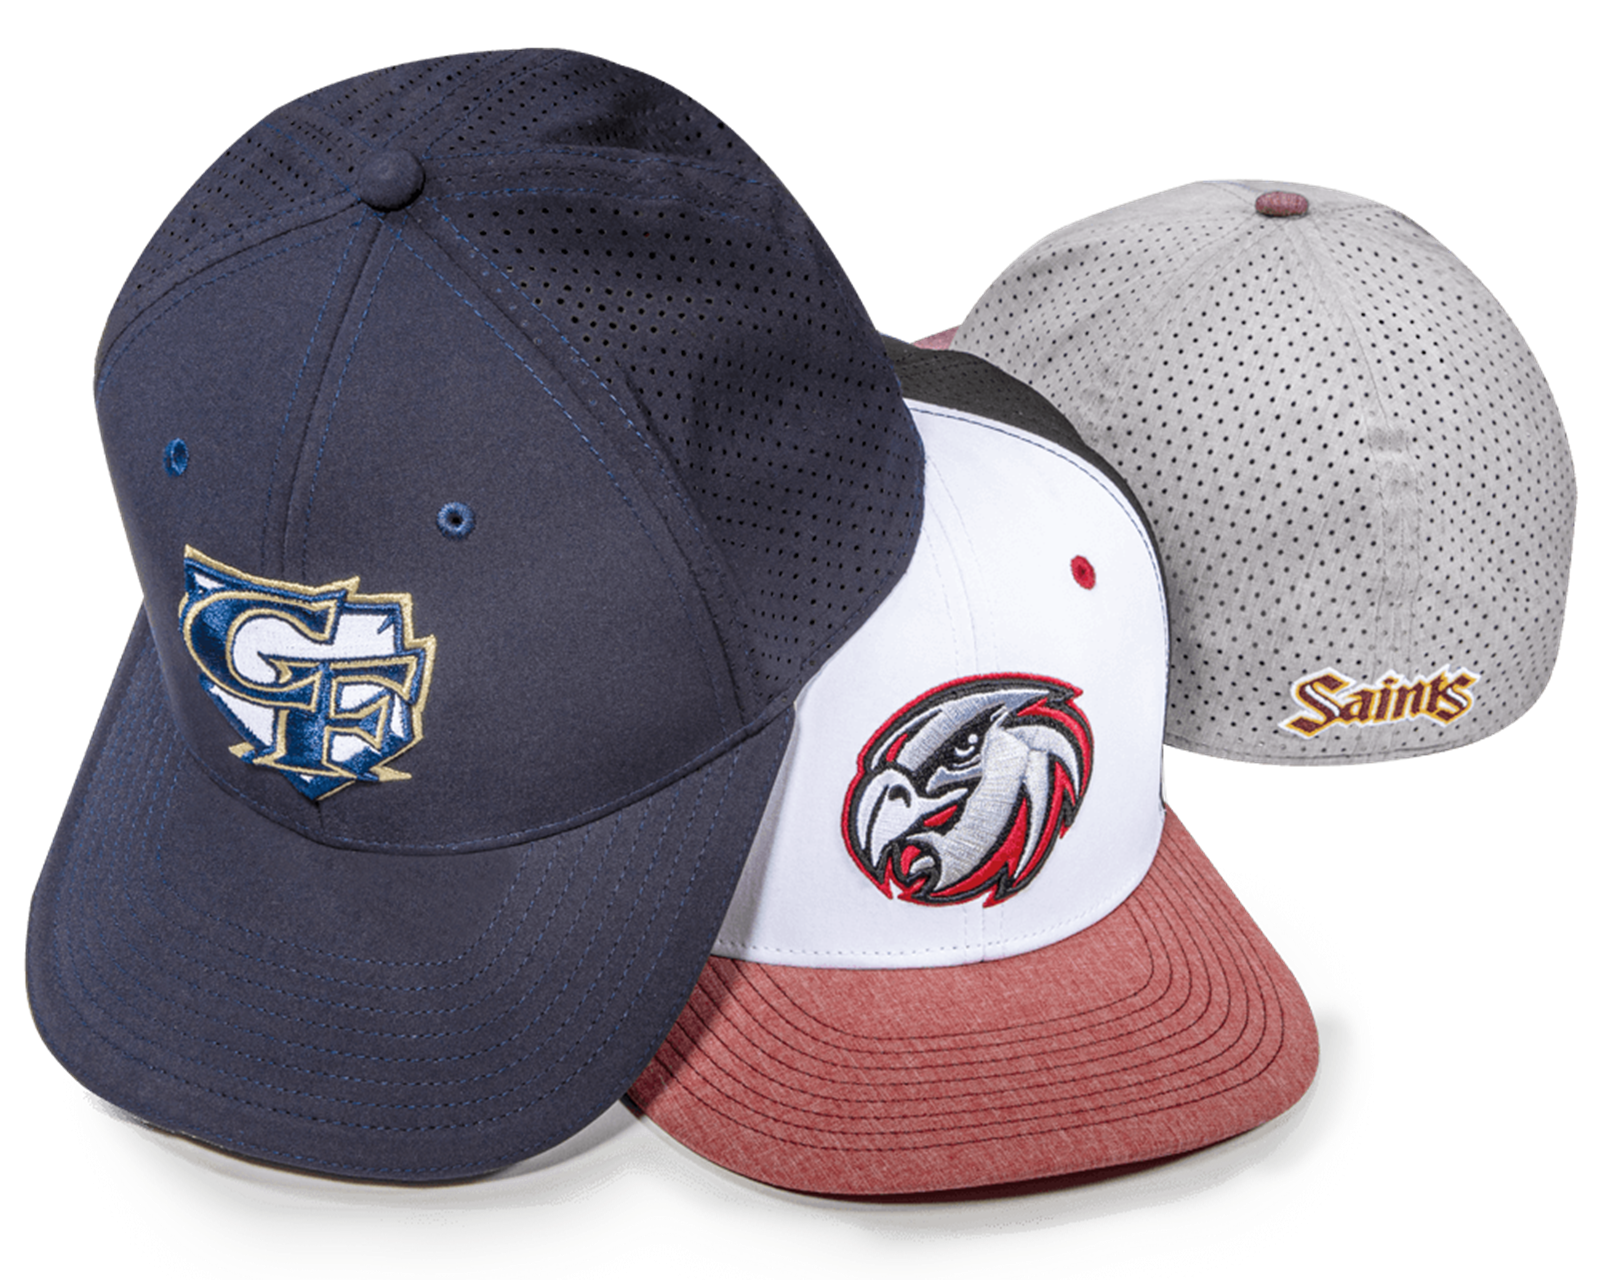 A group of Perforated TriTech baseball hats